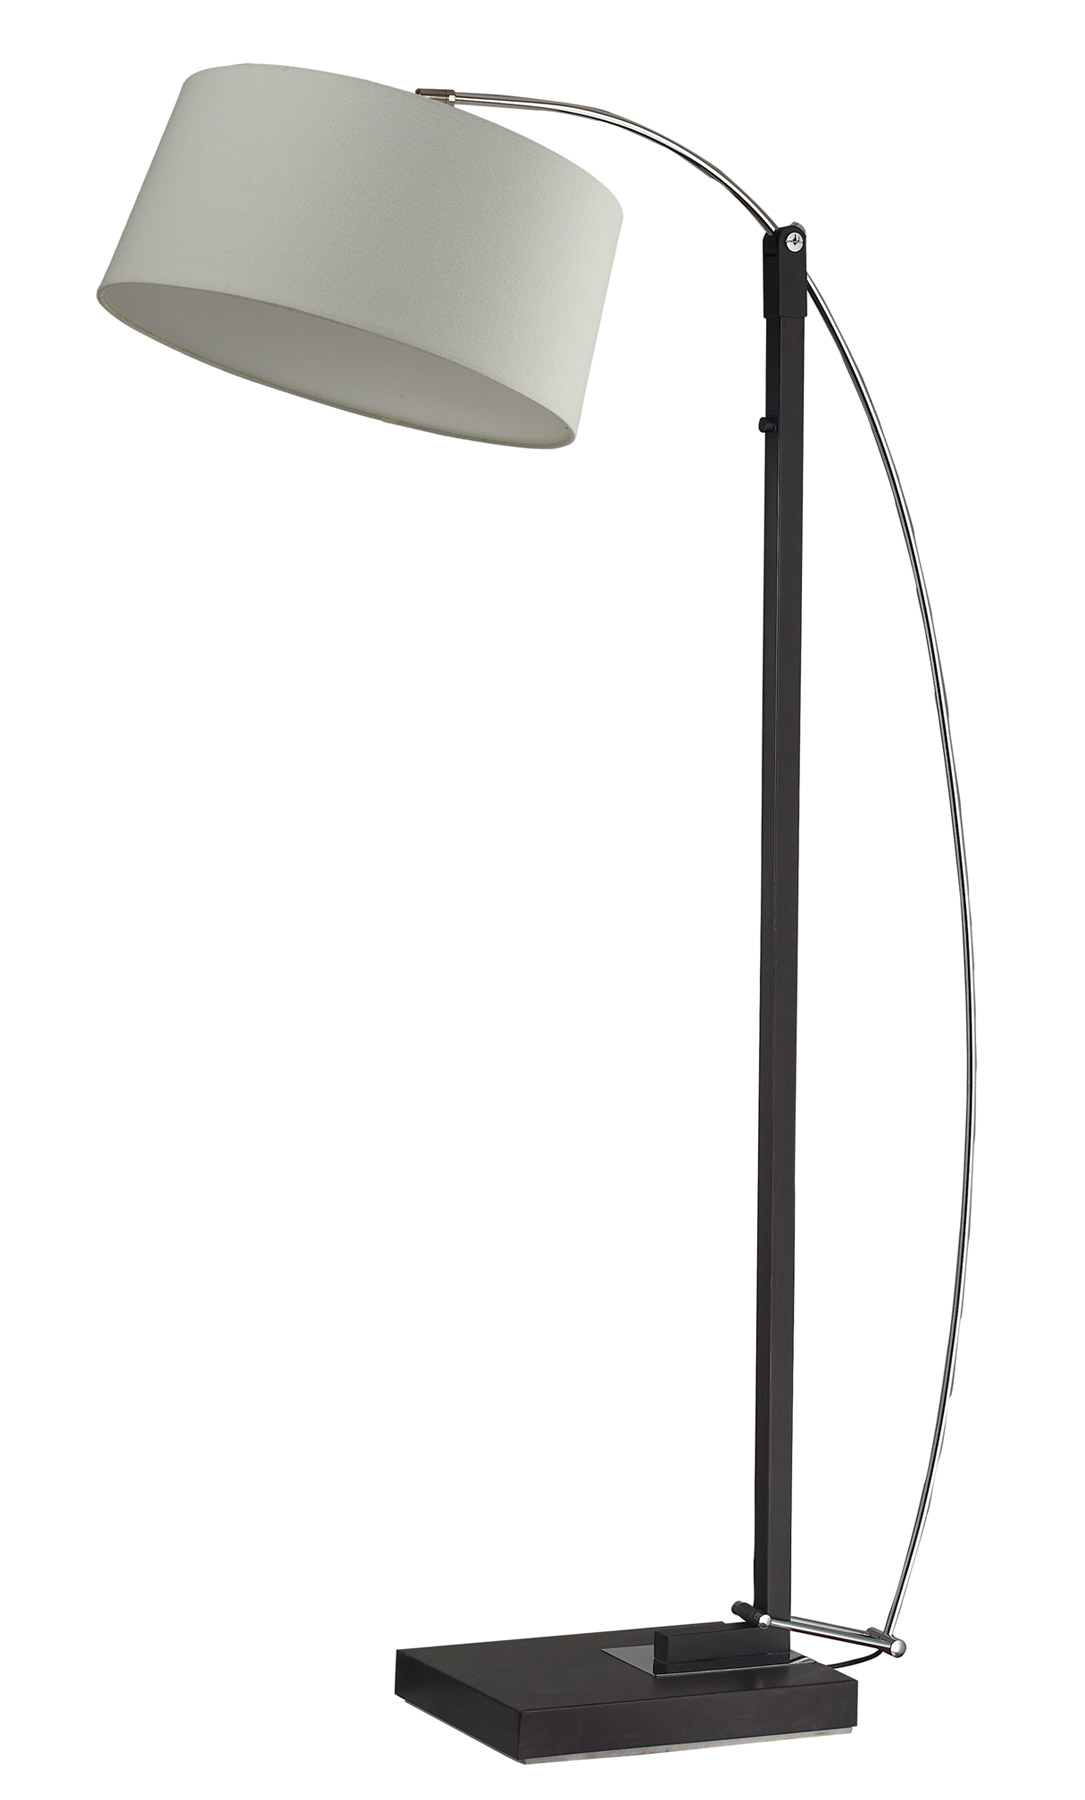 dimond d2183 logan square adjustable arc floor lamp - Arc Floor Lamps